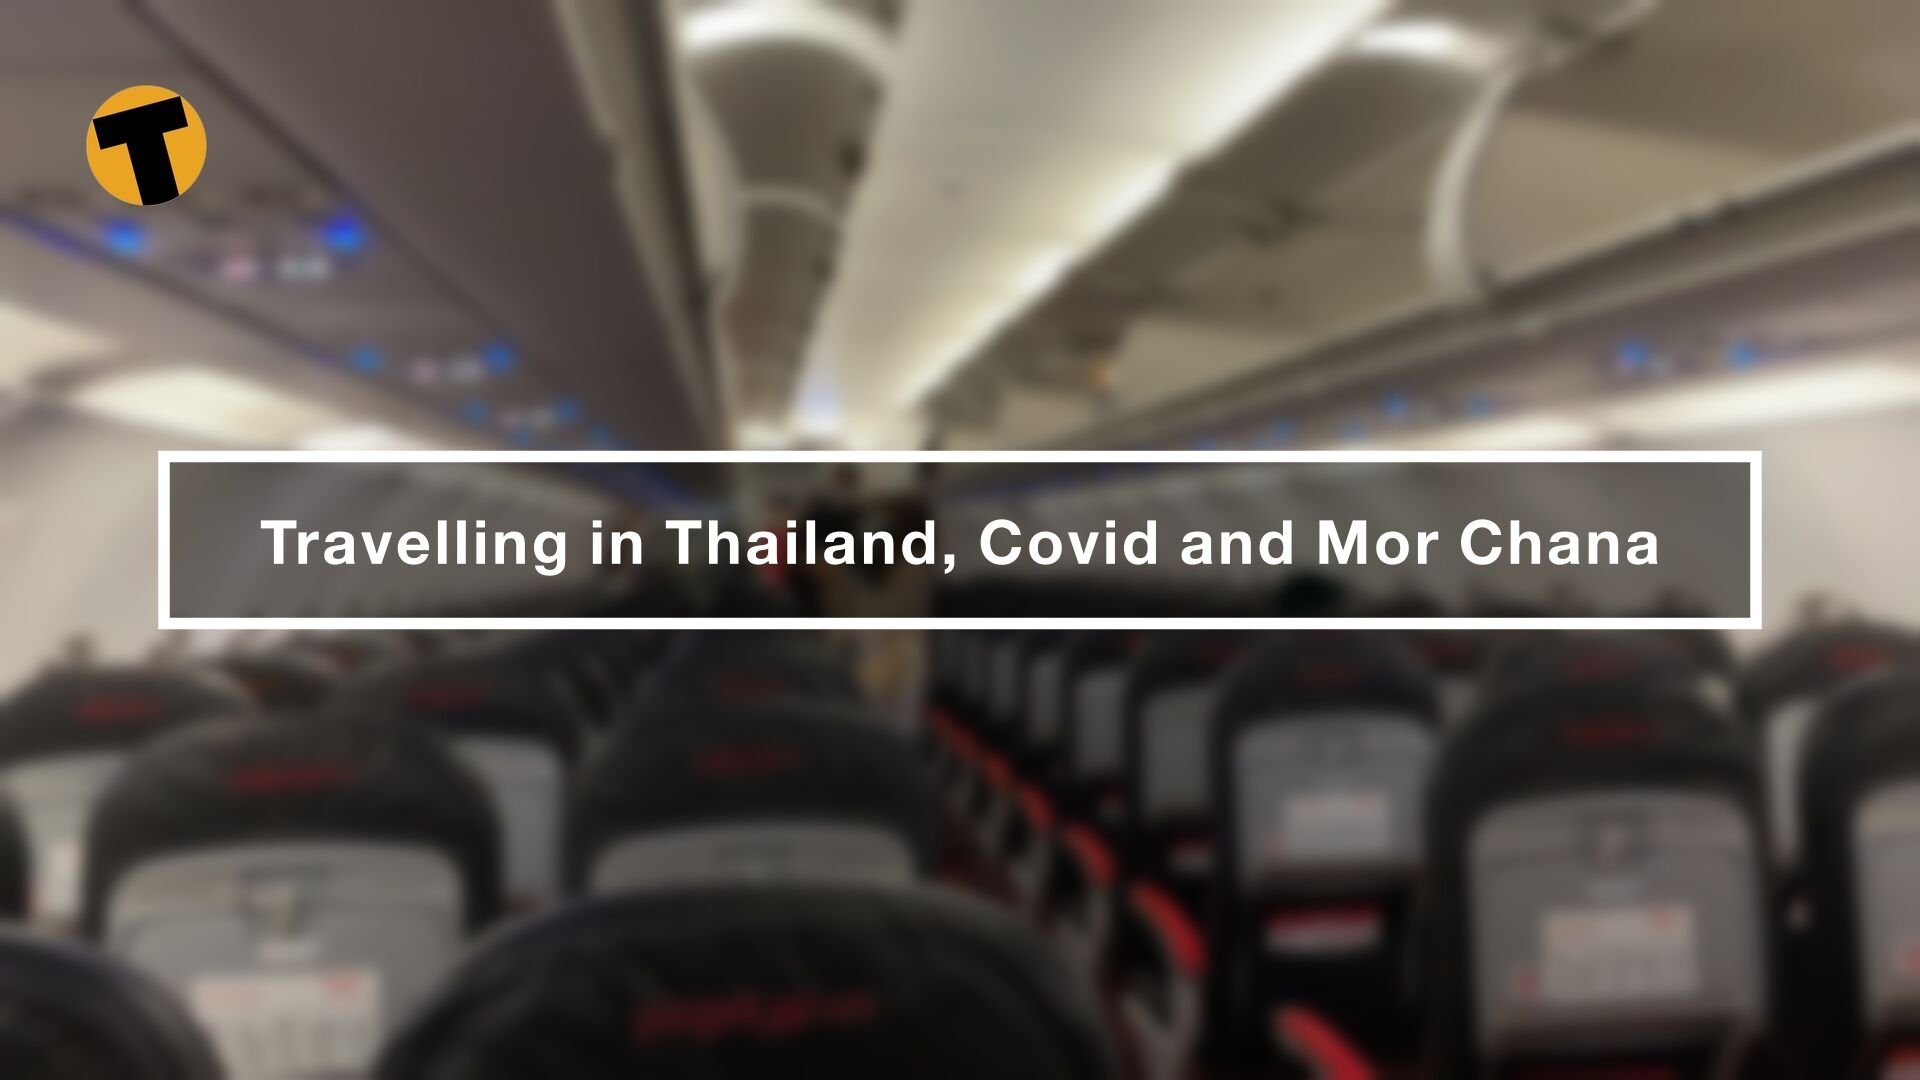 Travelling in Thailand, Covid and Mor Chana | VIDEO | The Thaiger